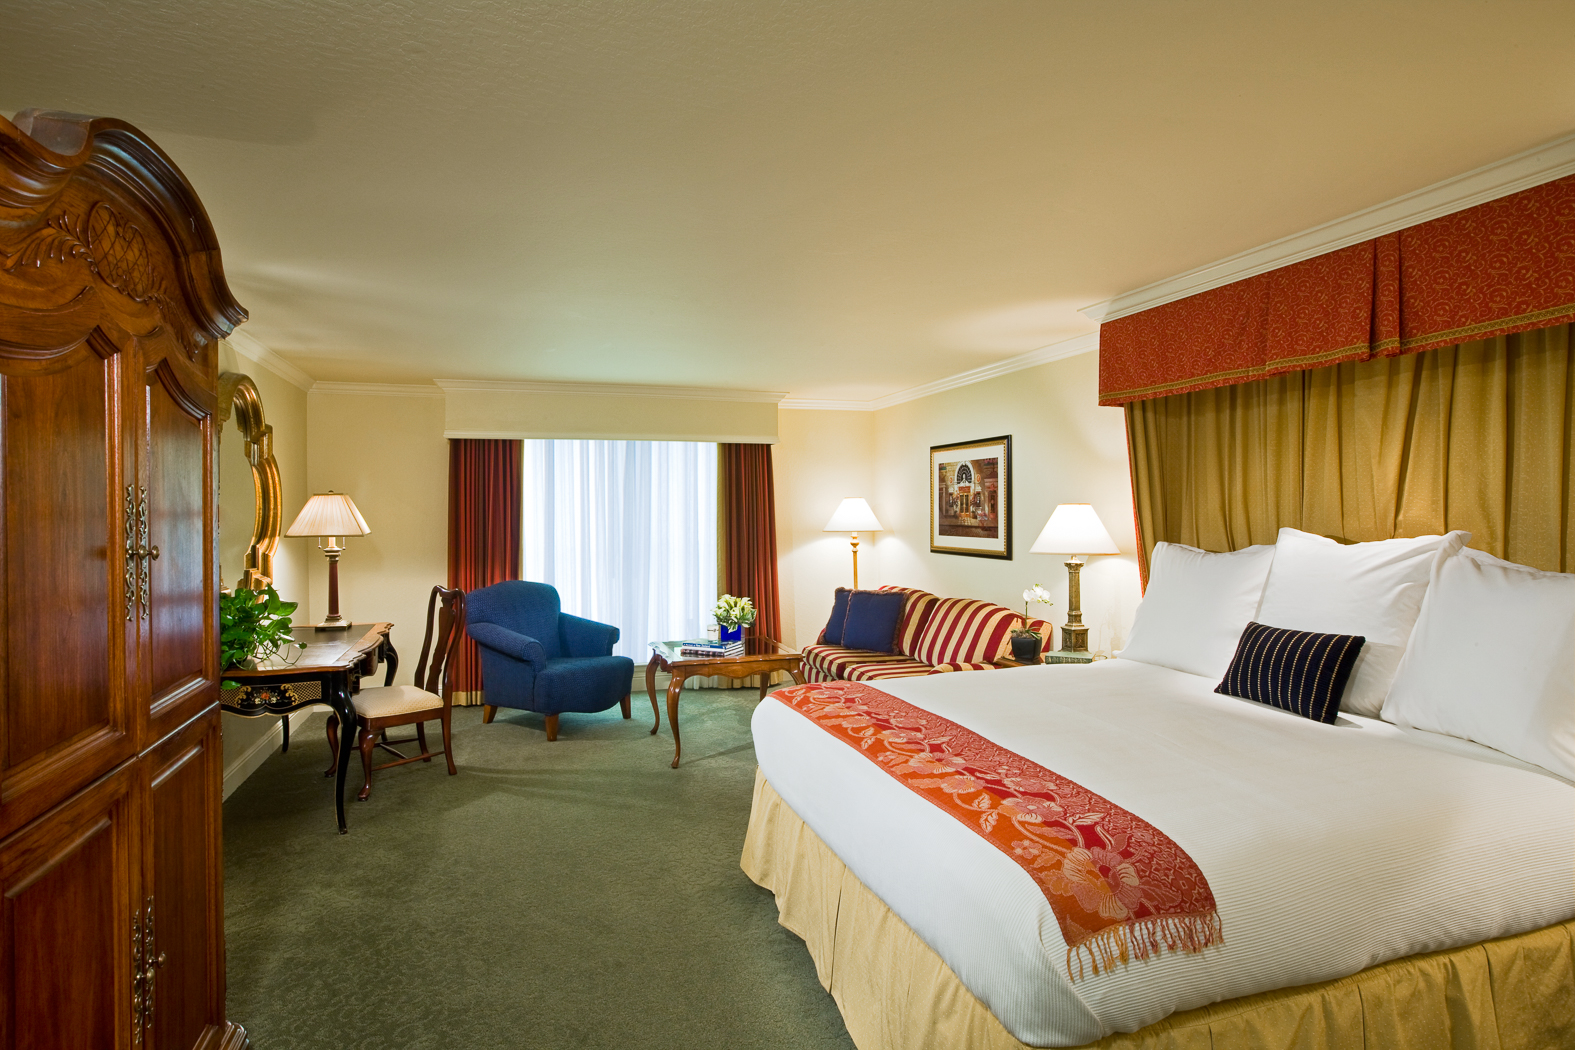 Rooms suites hotel rooms near walnut creek lafayette for 13 salon walnut creek